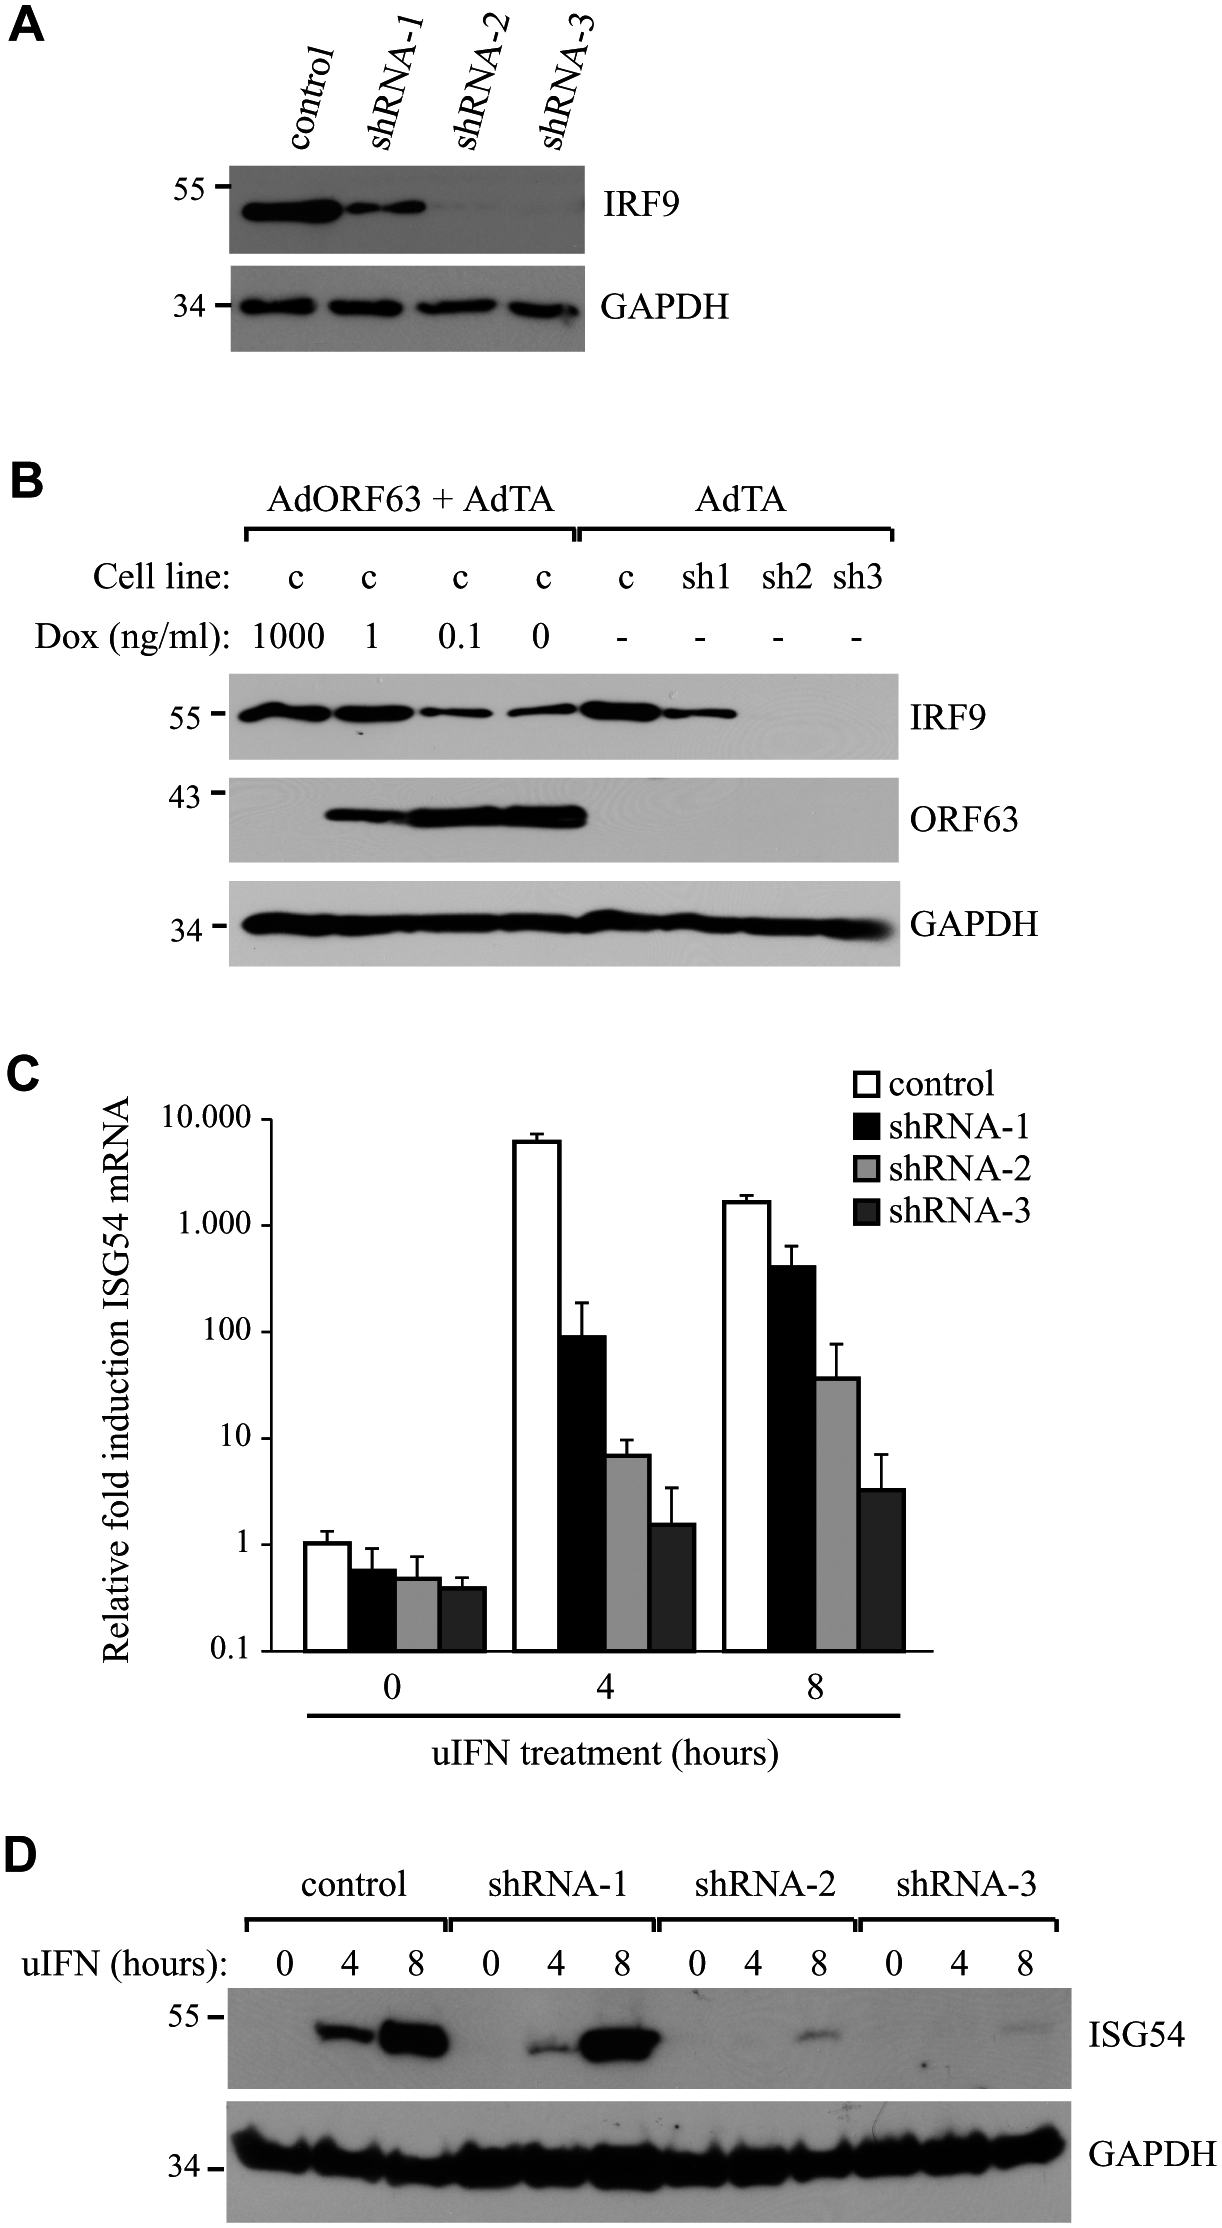 IRF9 is required for efficient ISG induction and overexpression of IRF9 overcomes JAK-STAT inhbition by ORF63.